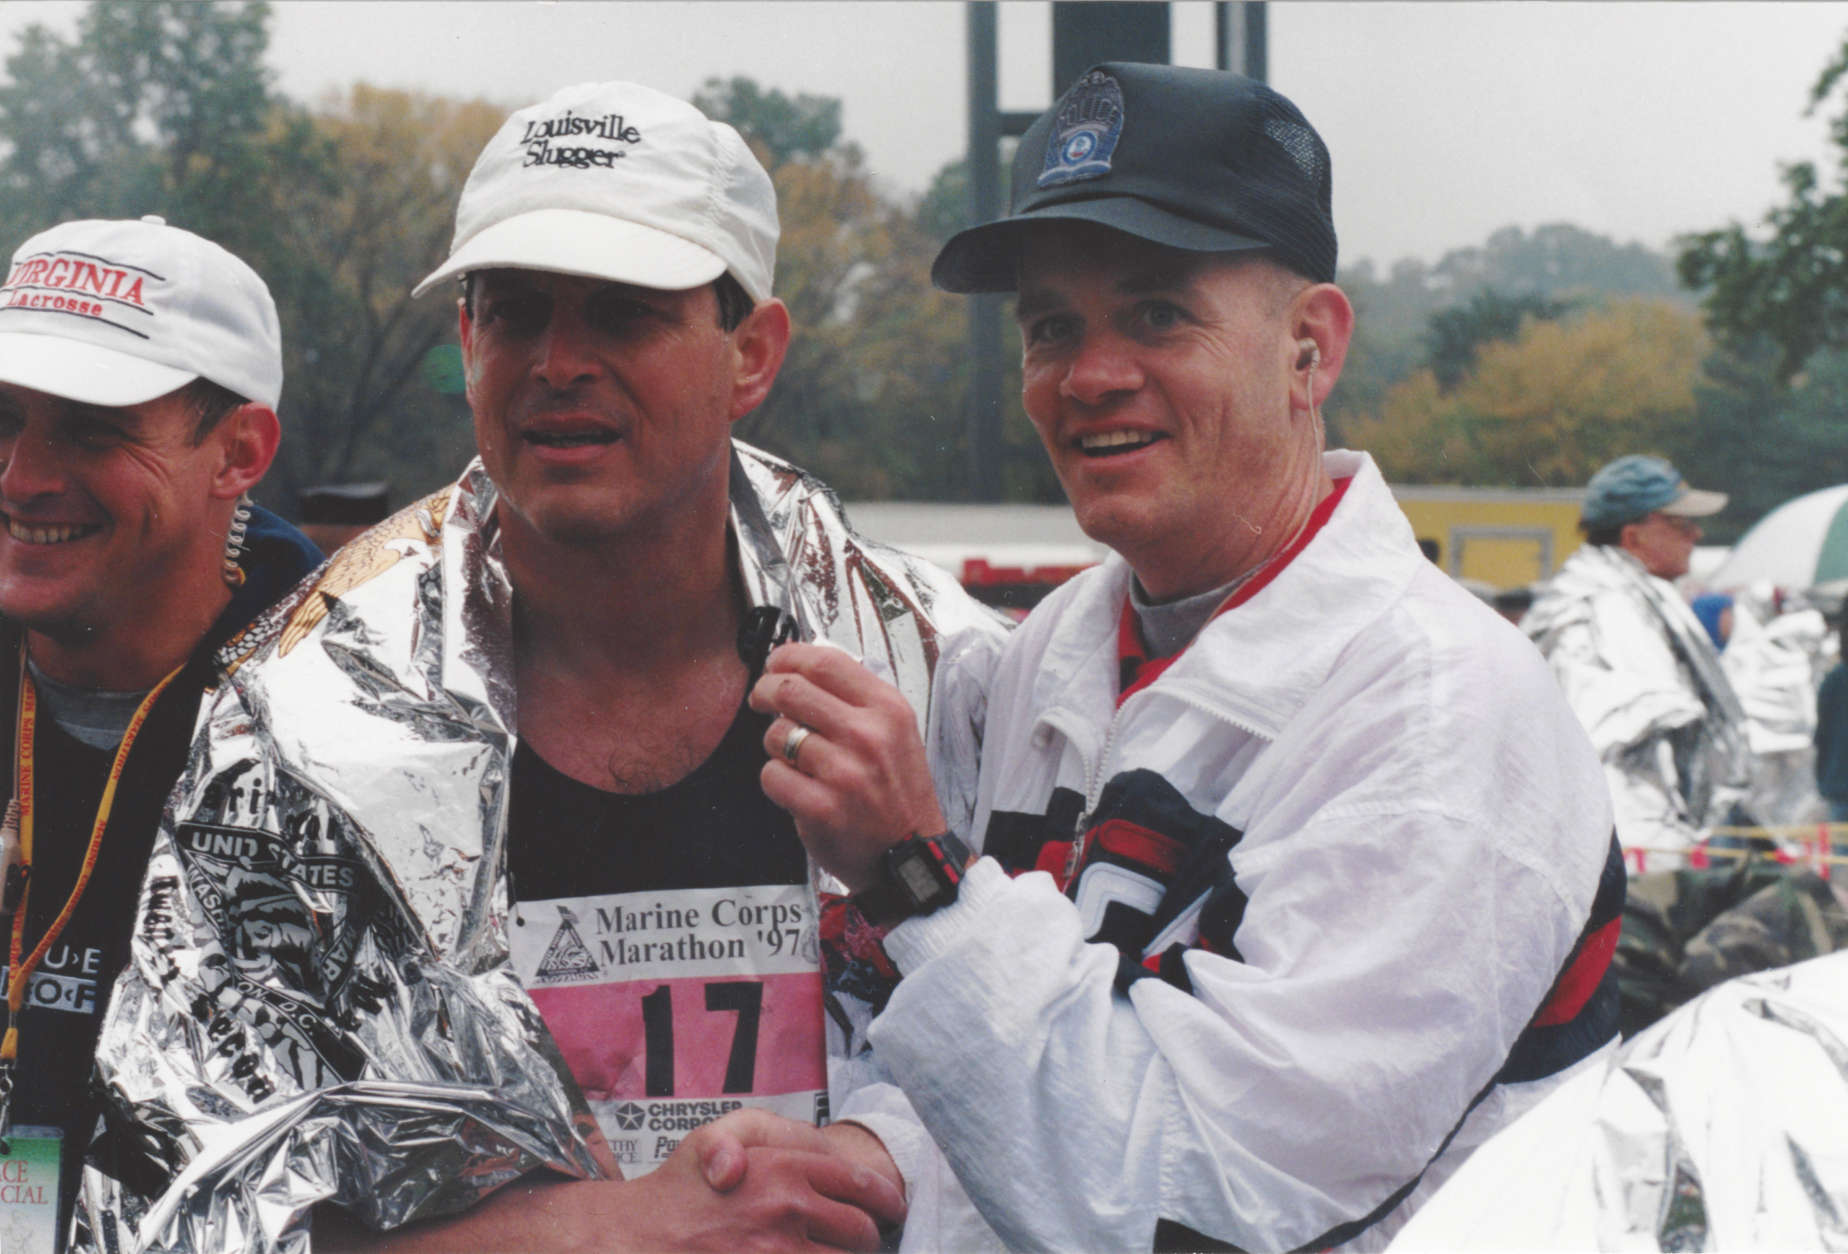 Then Vice President Al Gore poses with Race Director Rick Nealis after Gore finished the 1997 Marine Corps Marathon. (Courtesy Marine Corps Marathon)